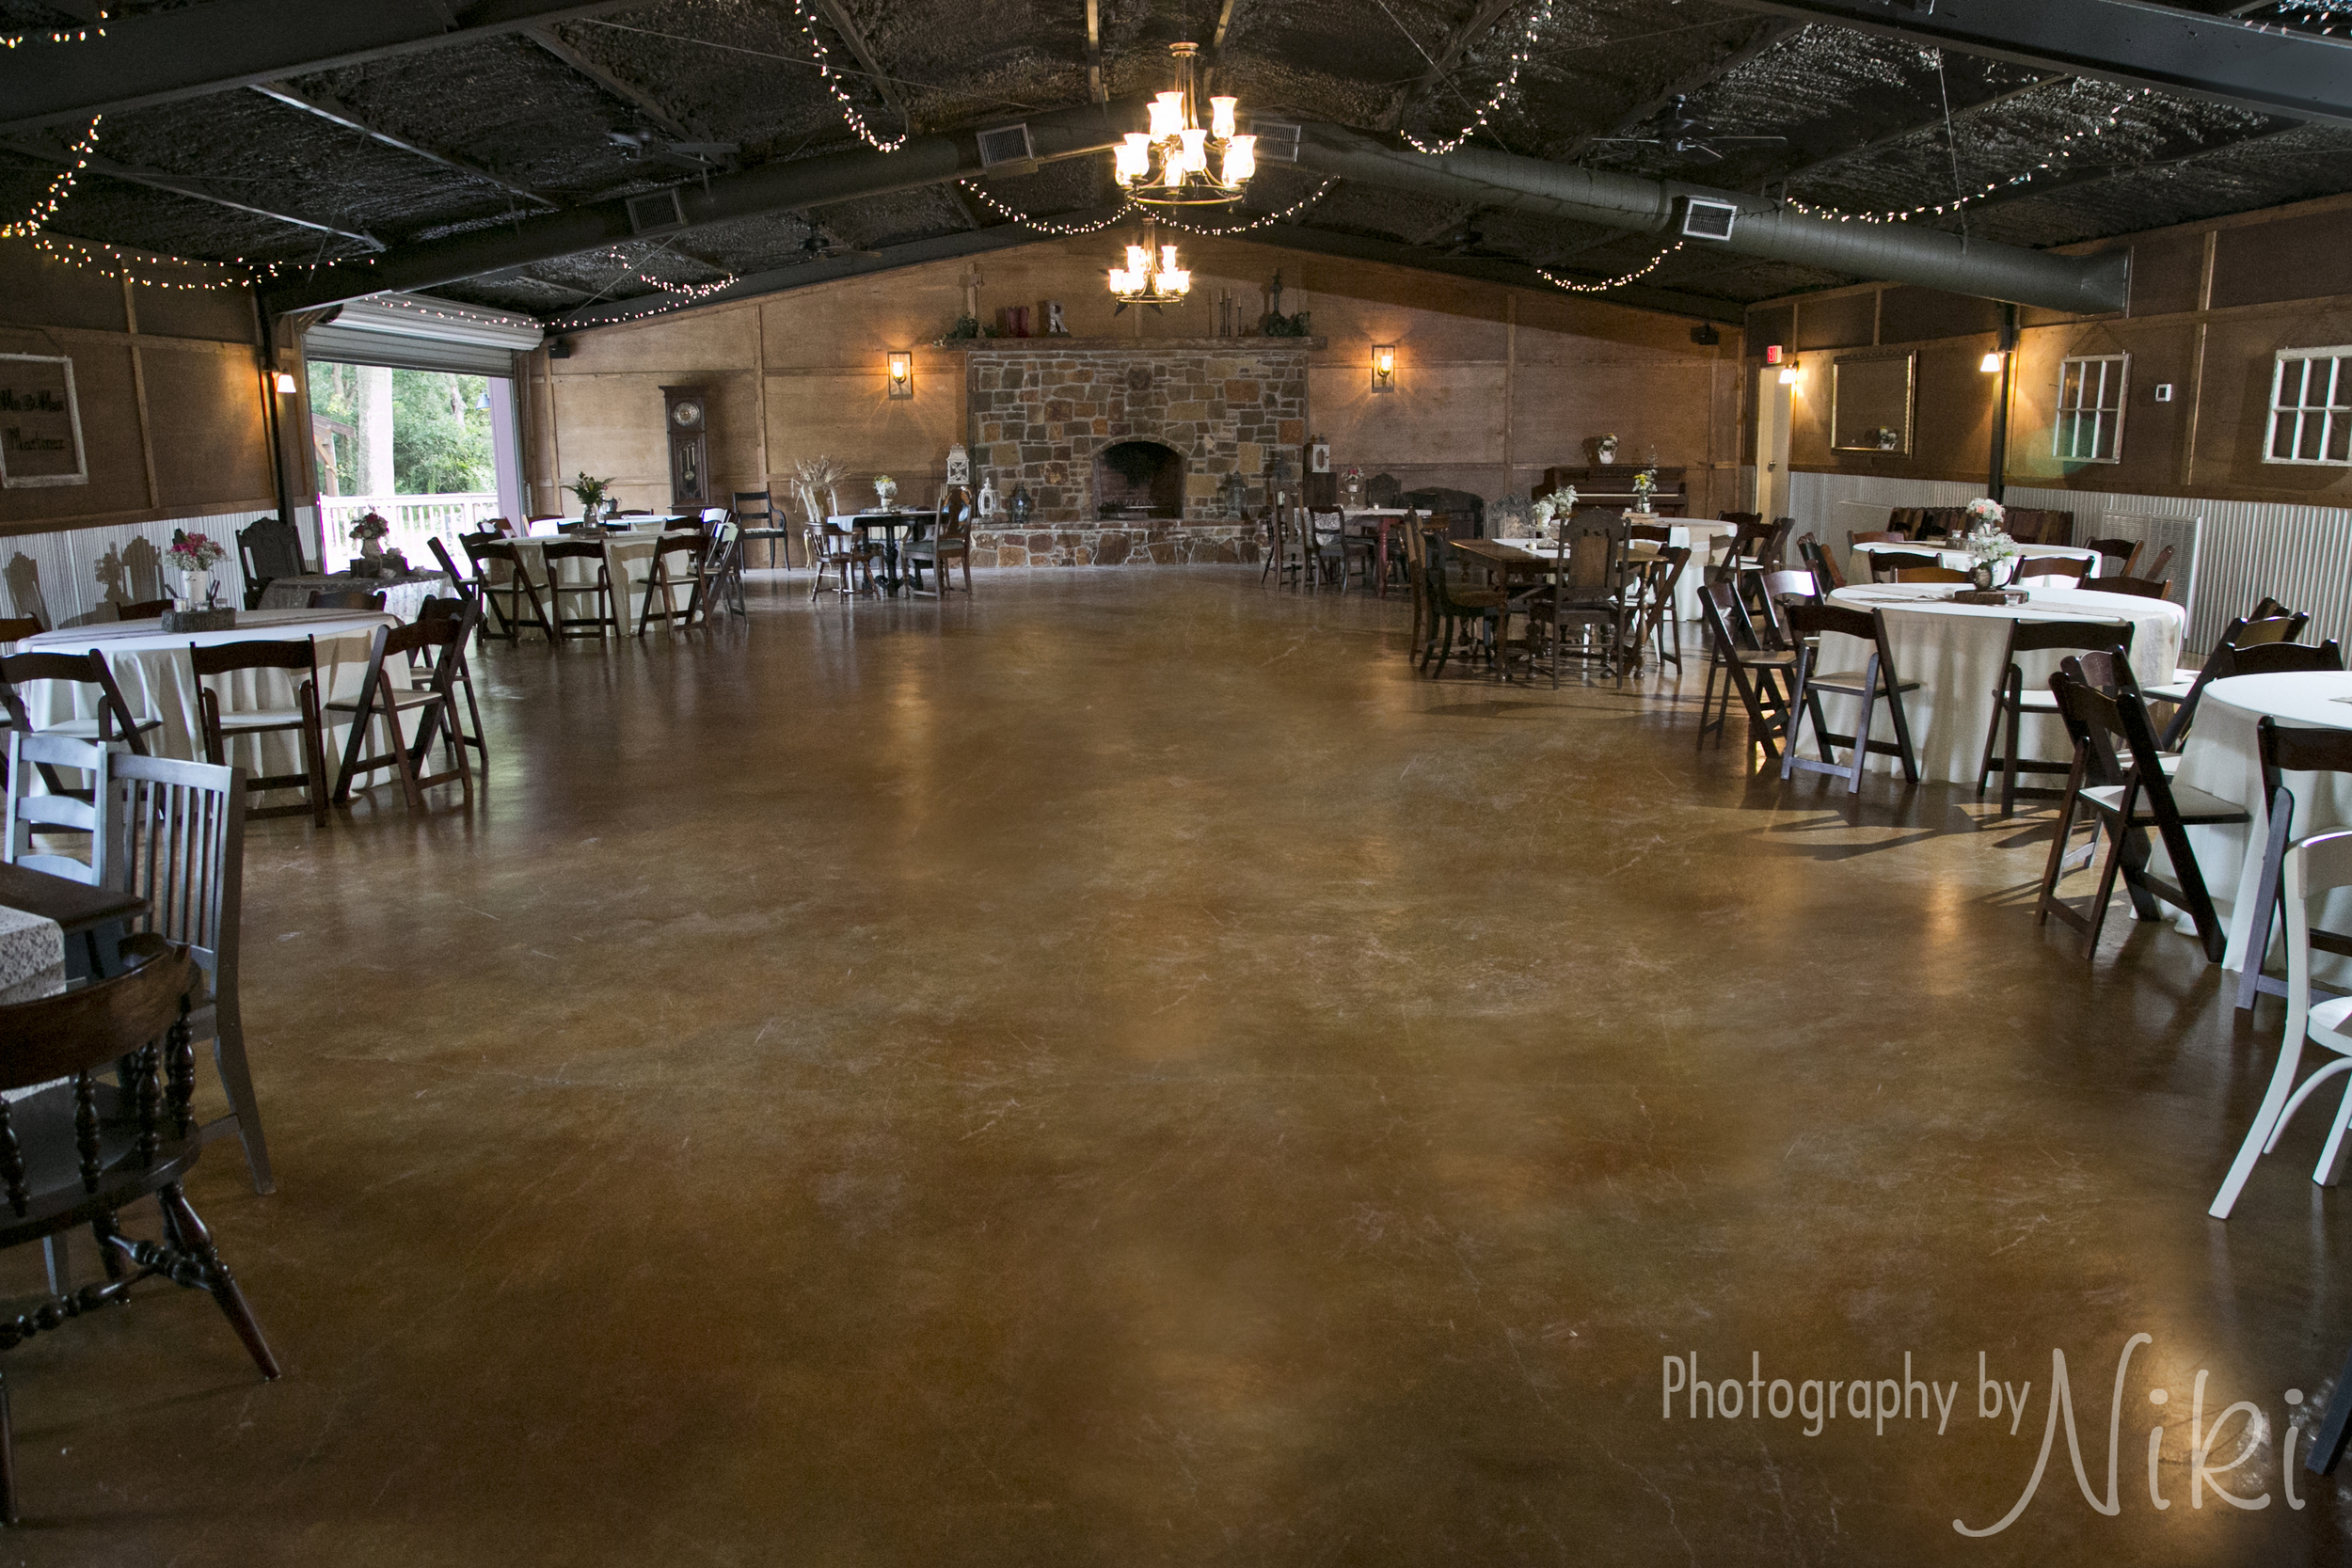 The Reception Hall decorated with rustic tables and chairs.